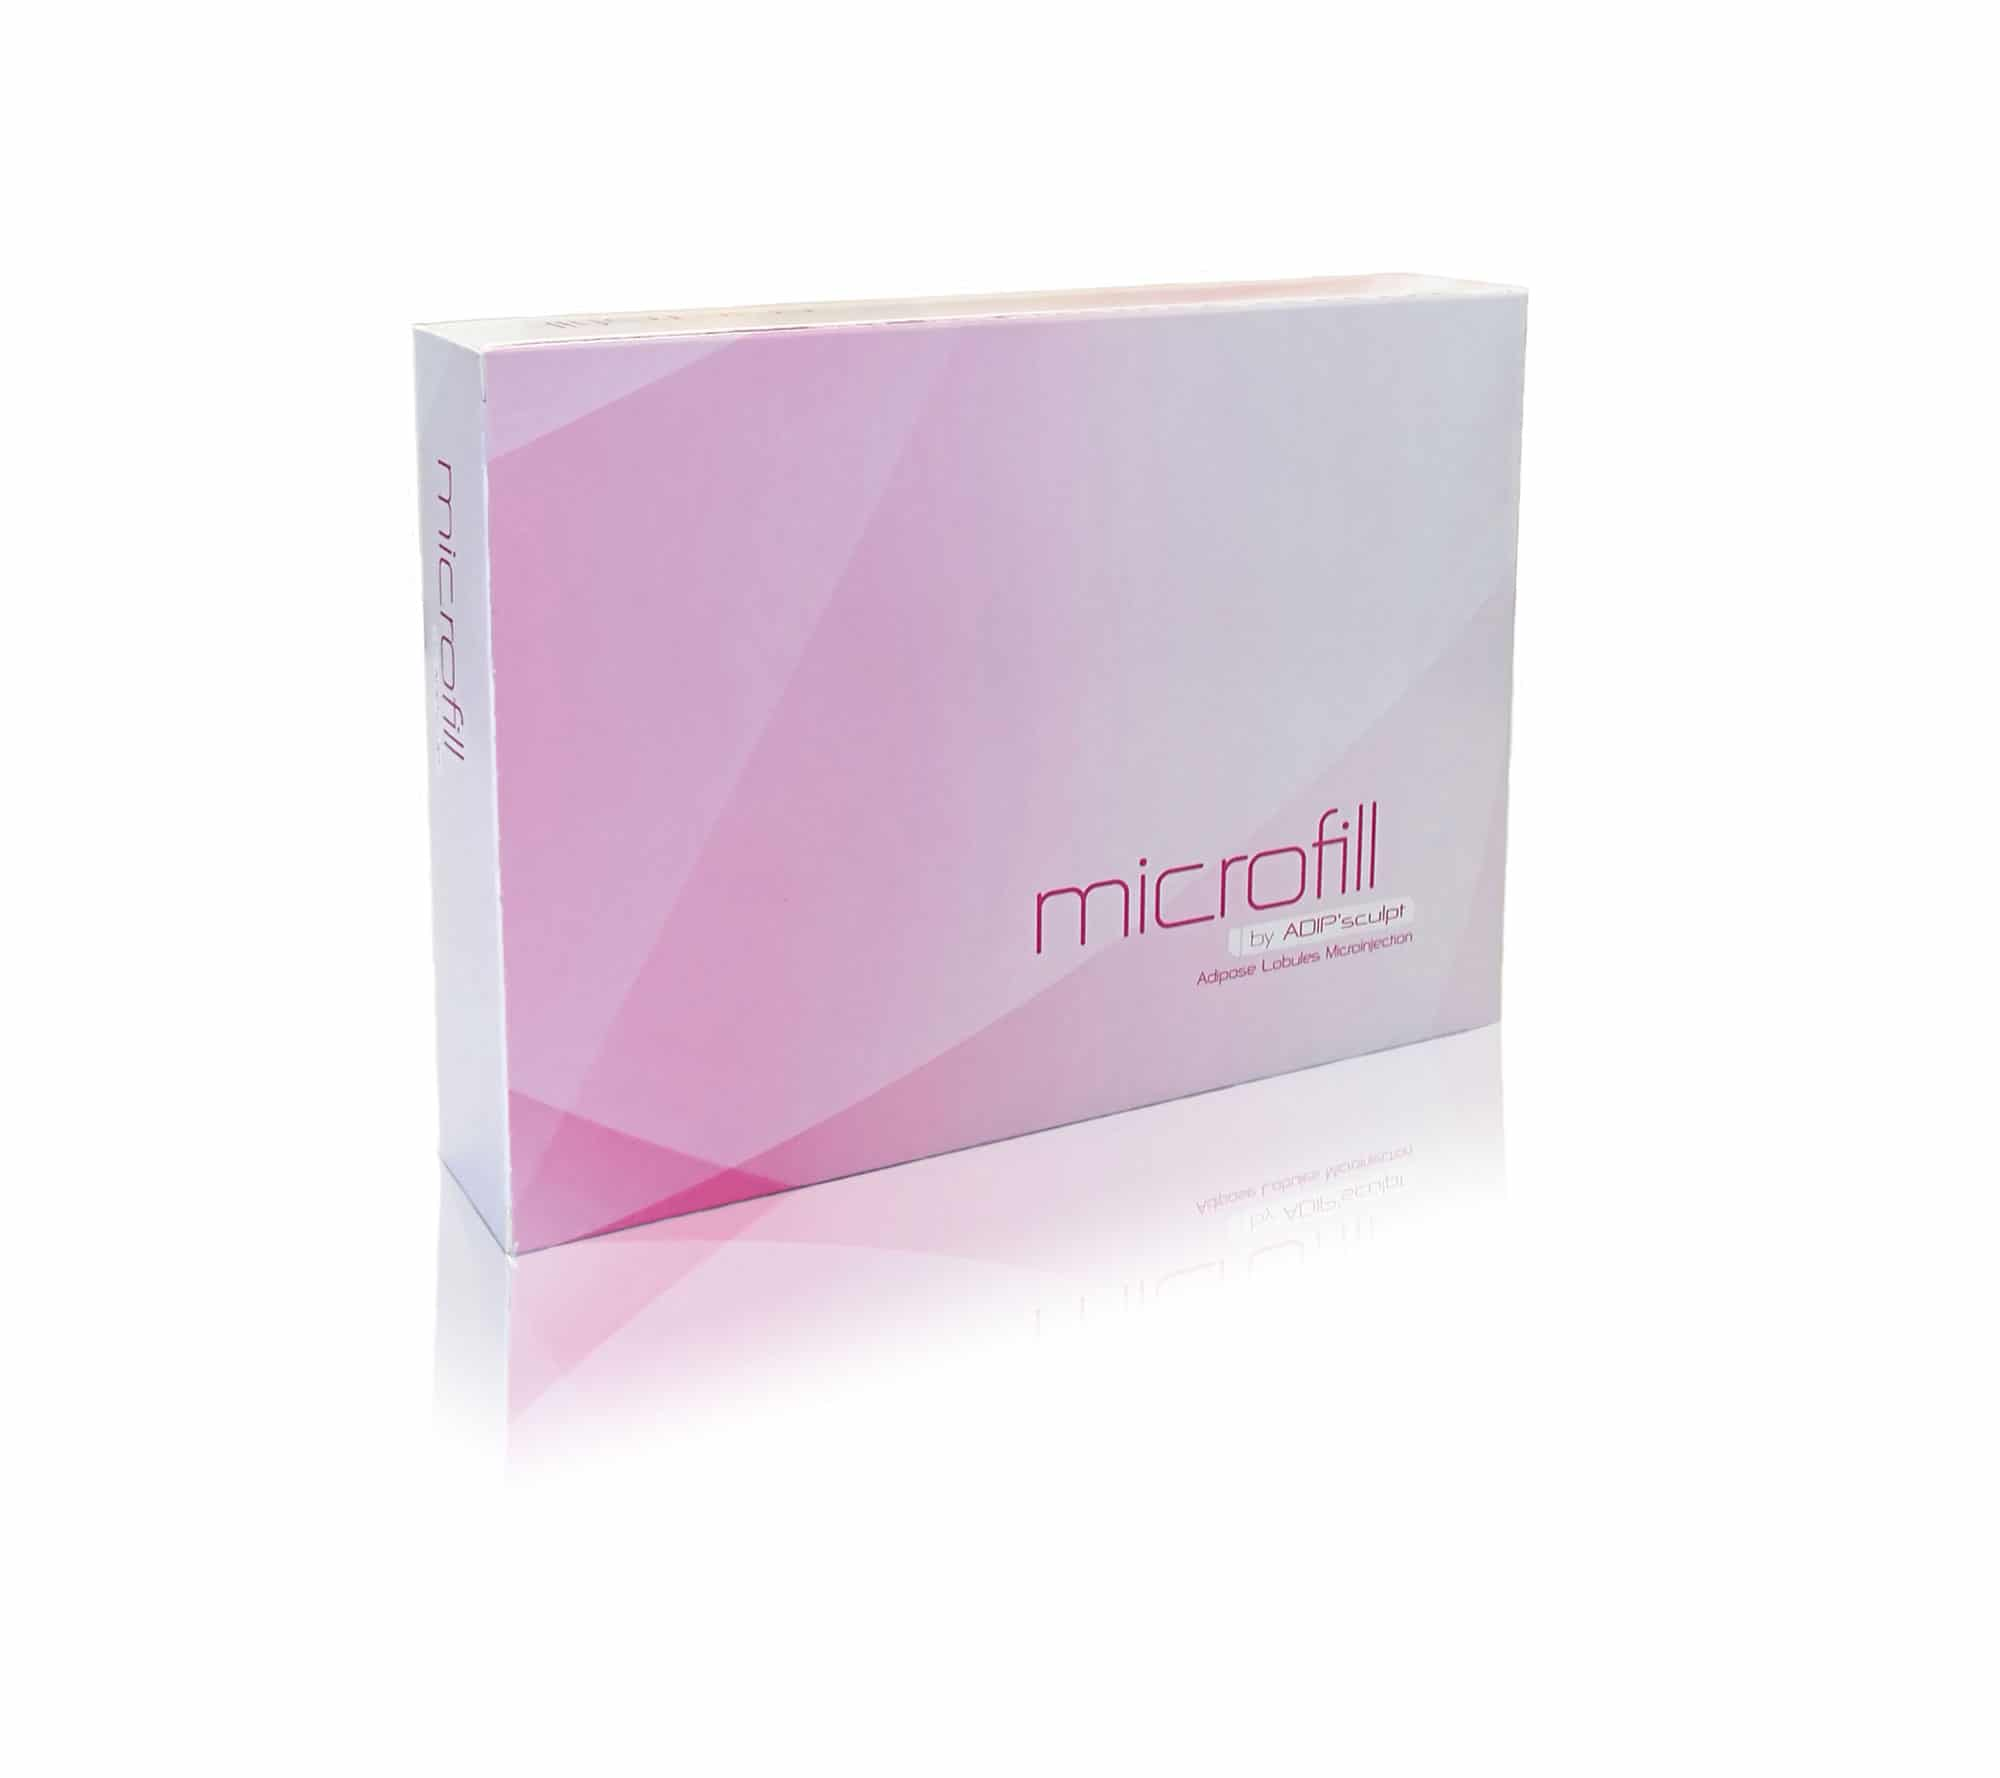 microfill lipofilling lipomodeling fat grafting adipsculpt leader efficient